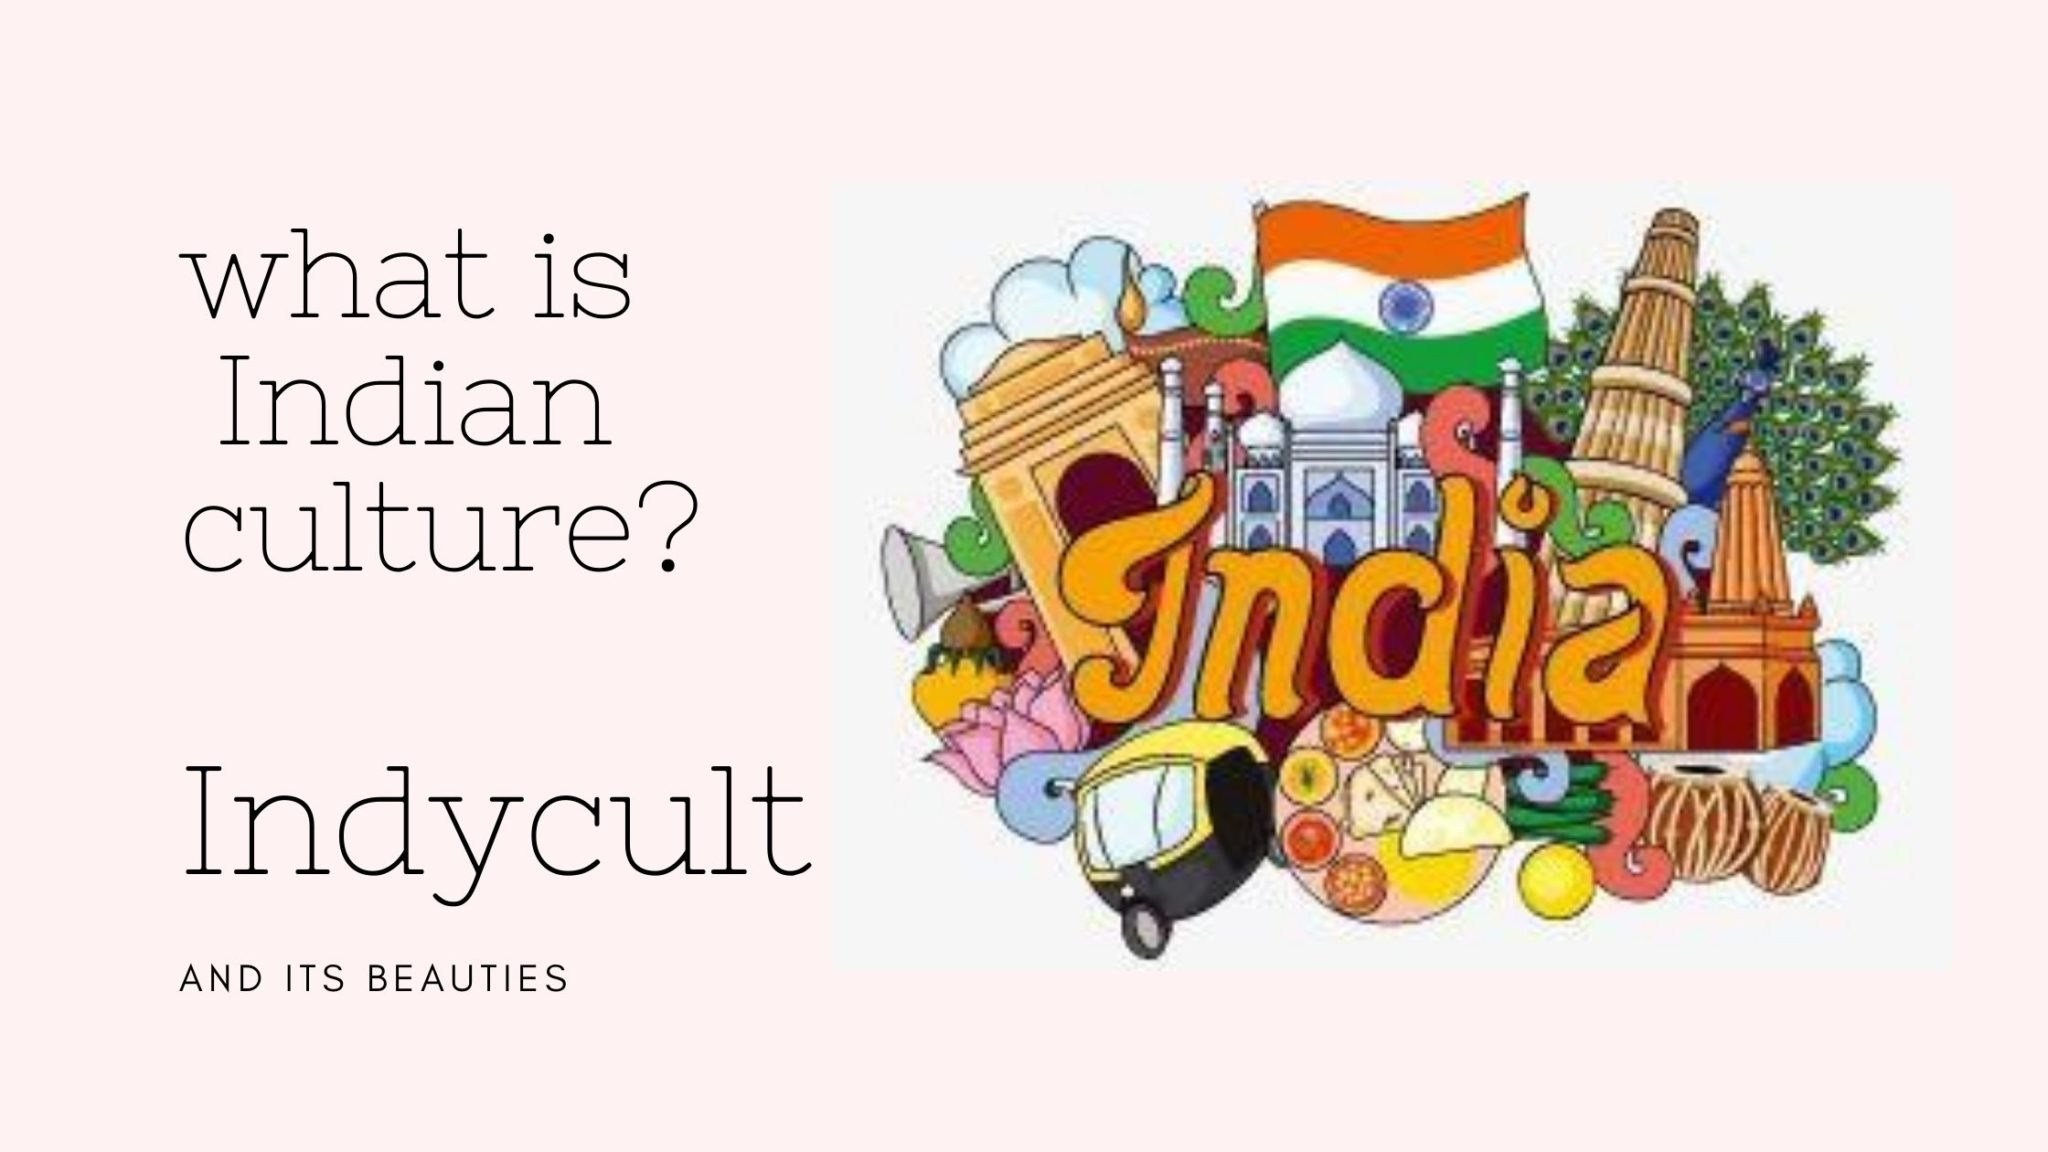 What is Indian culture (IndyCult) and its beauties?